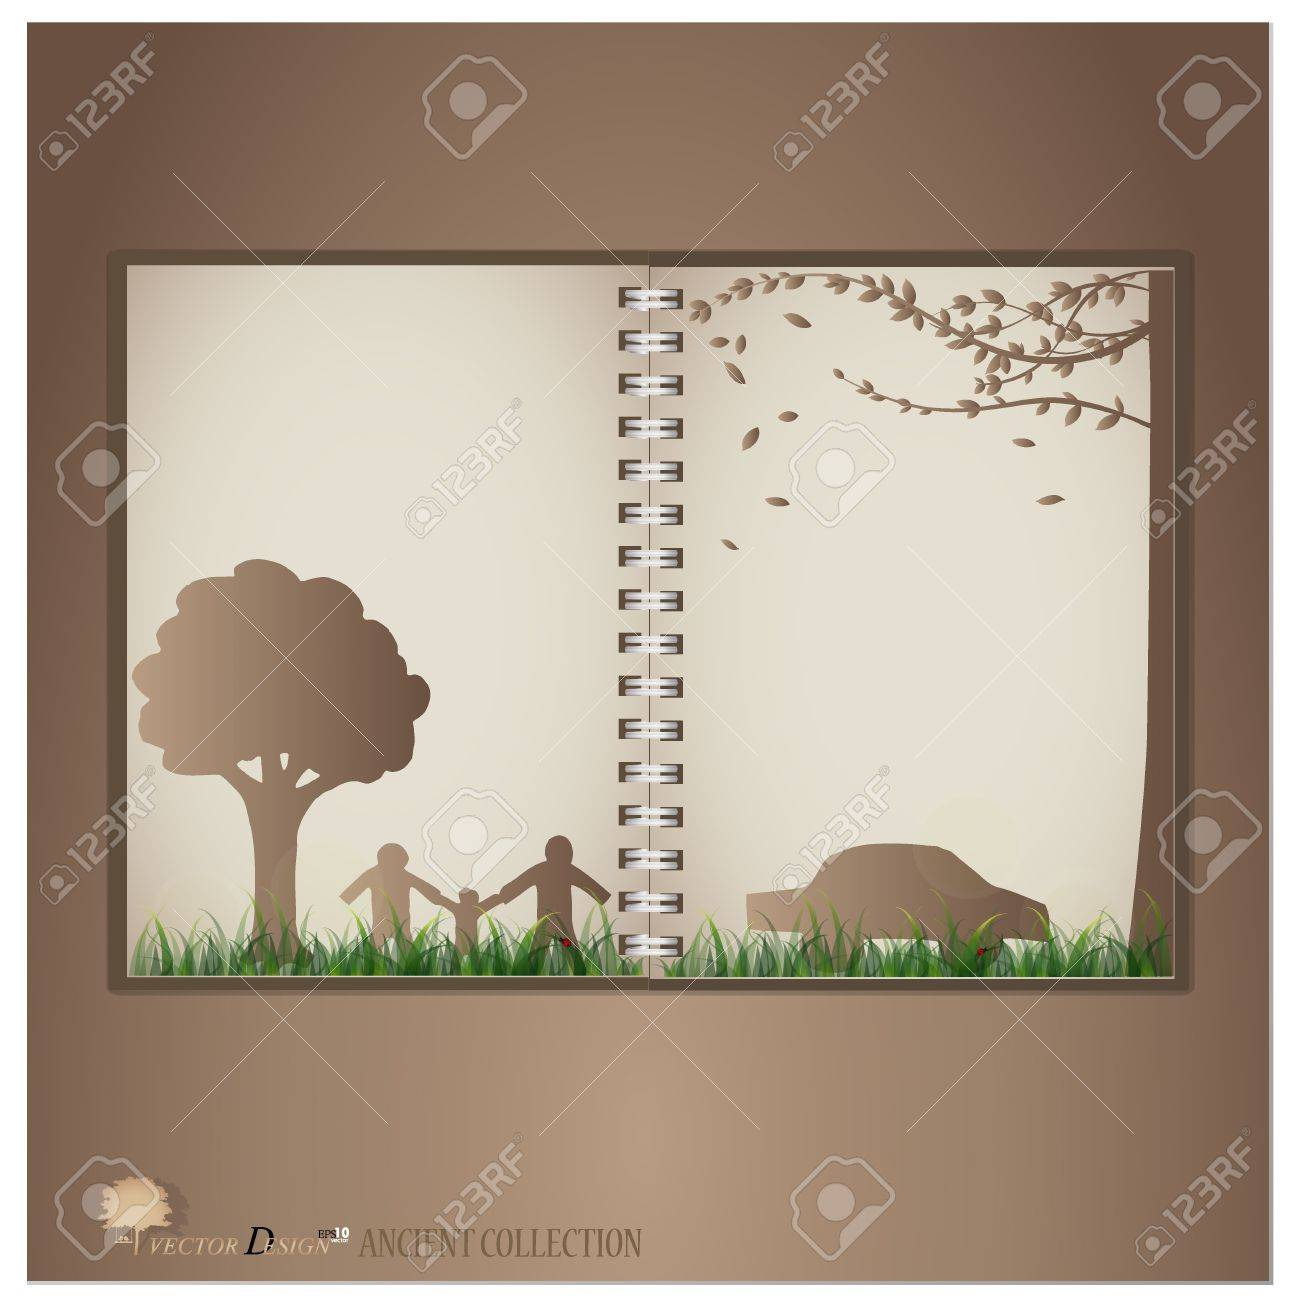 Vintage Notebook Designs Tree House And Family Vector Illustration Royalty Free Cliparts Vectors And Stock Illustration Image 14238318